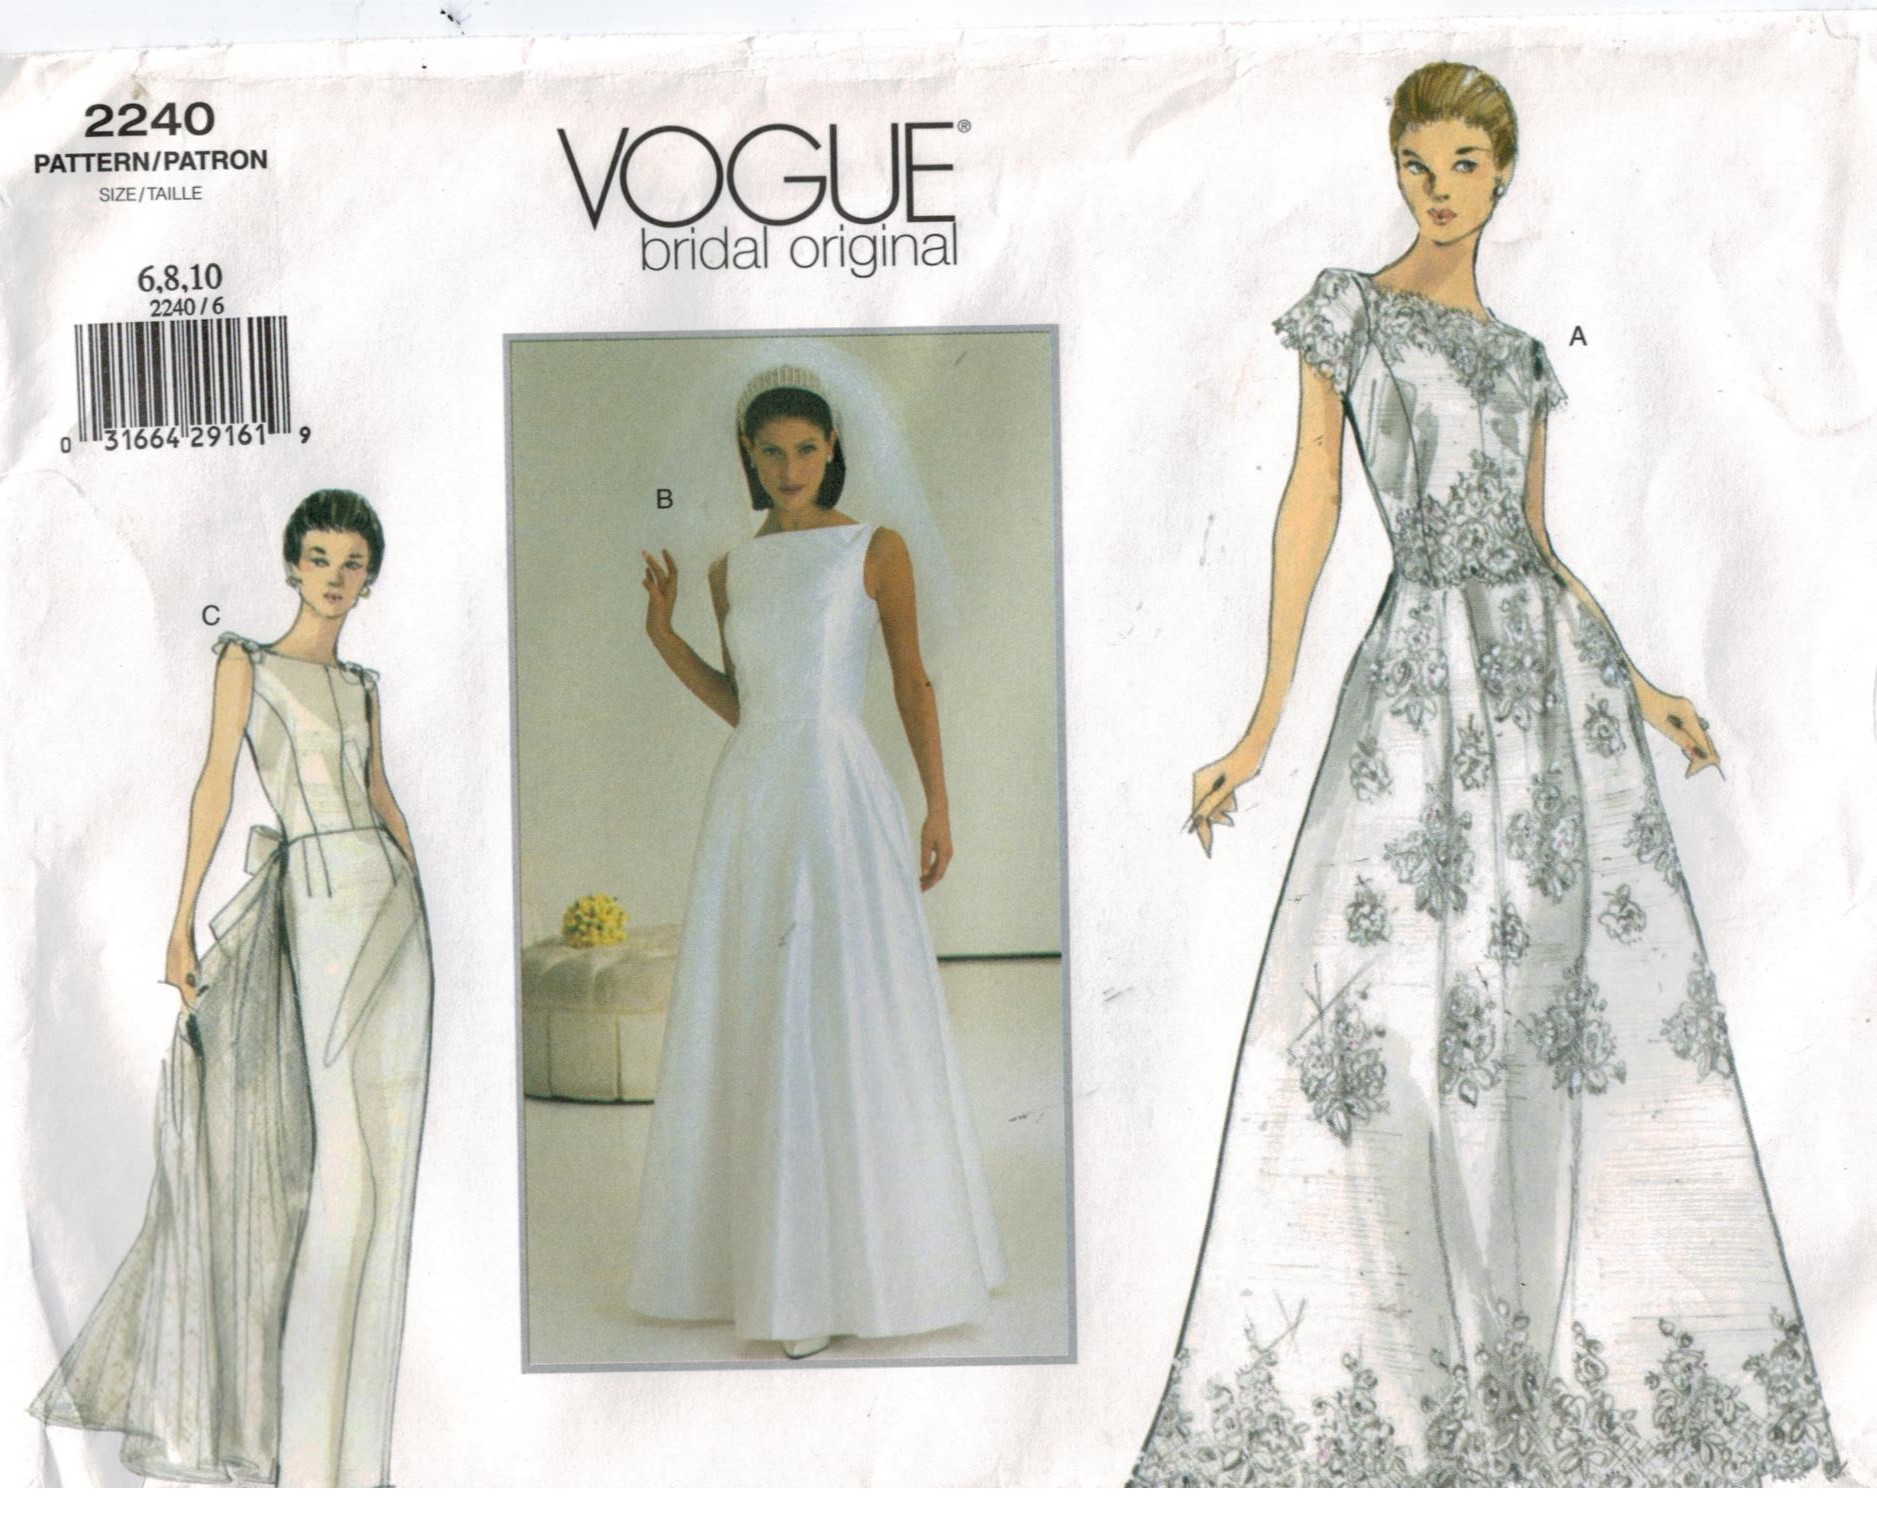 Exelent Prom Dress Patterns Vogue Mold - Wedding Plan Ideas ...